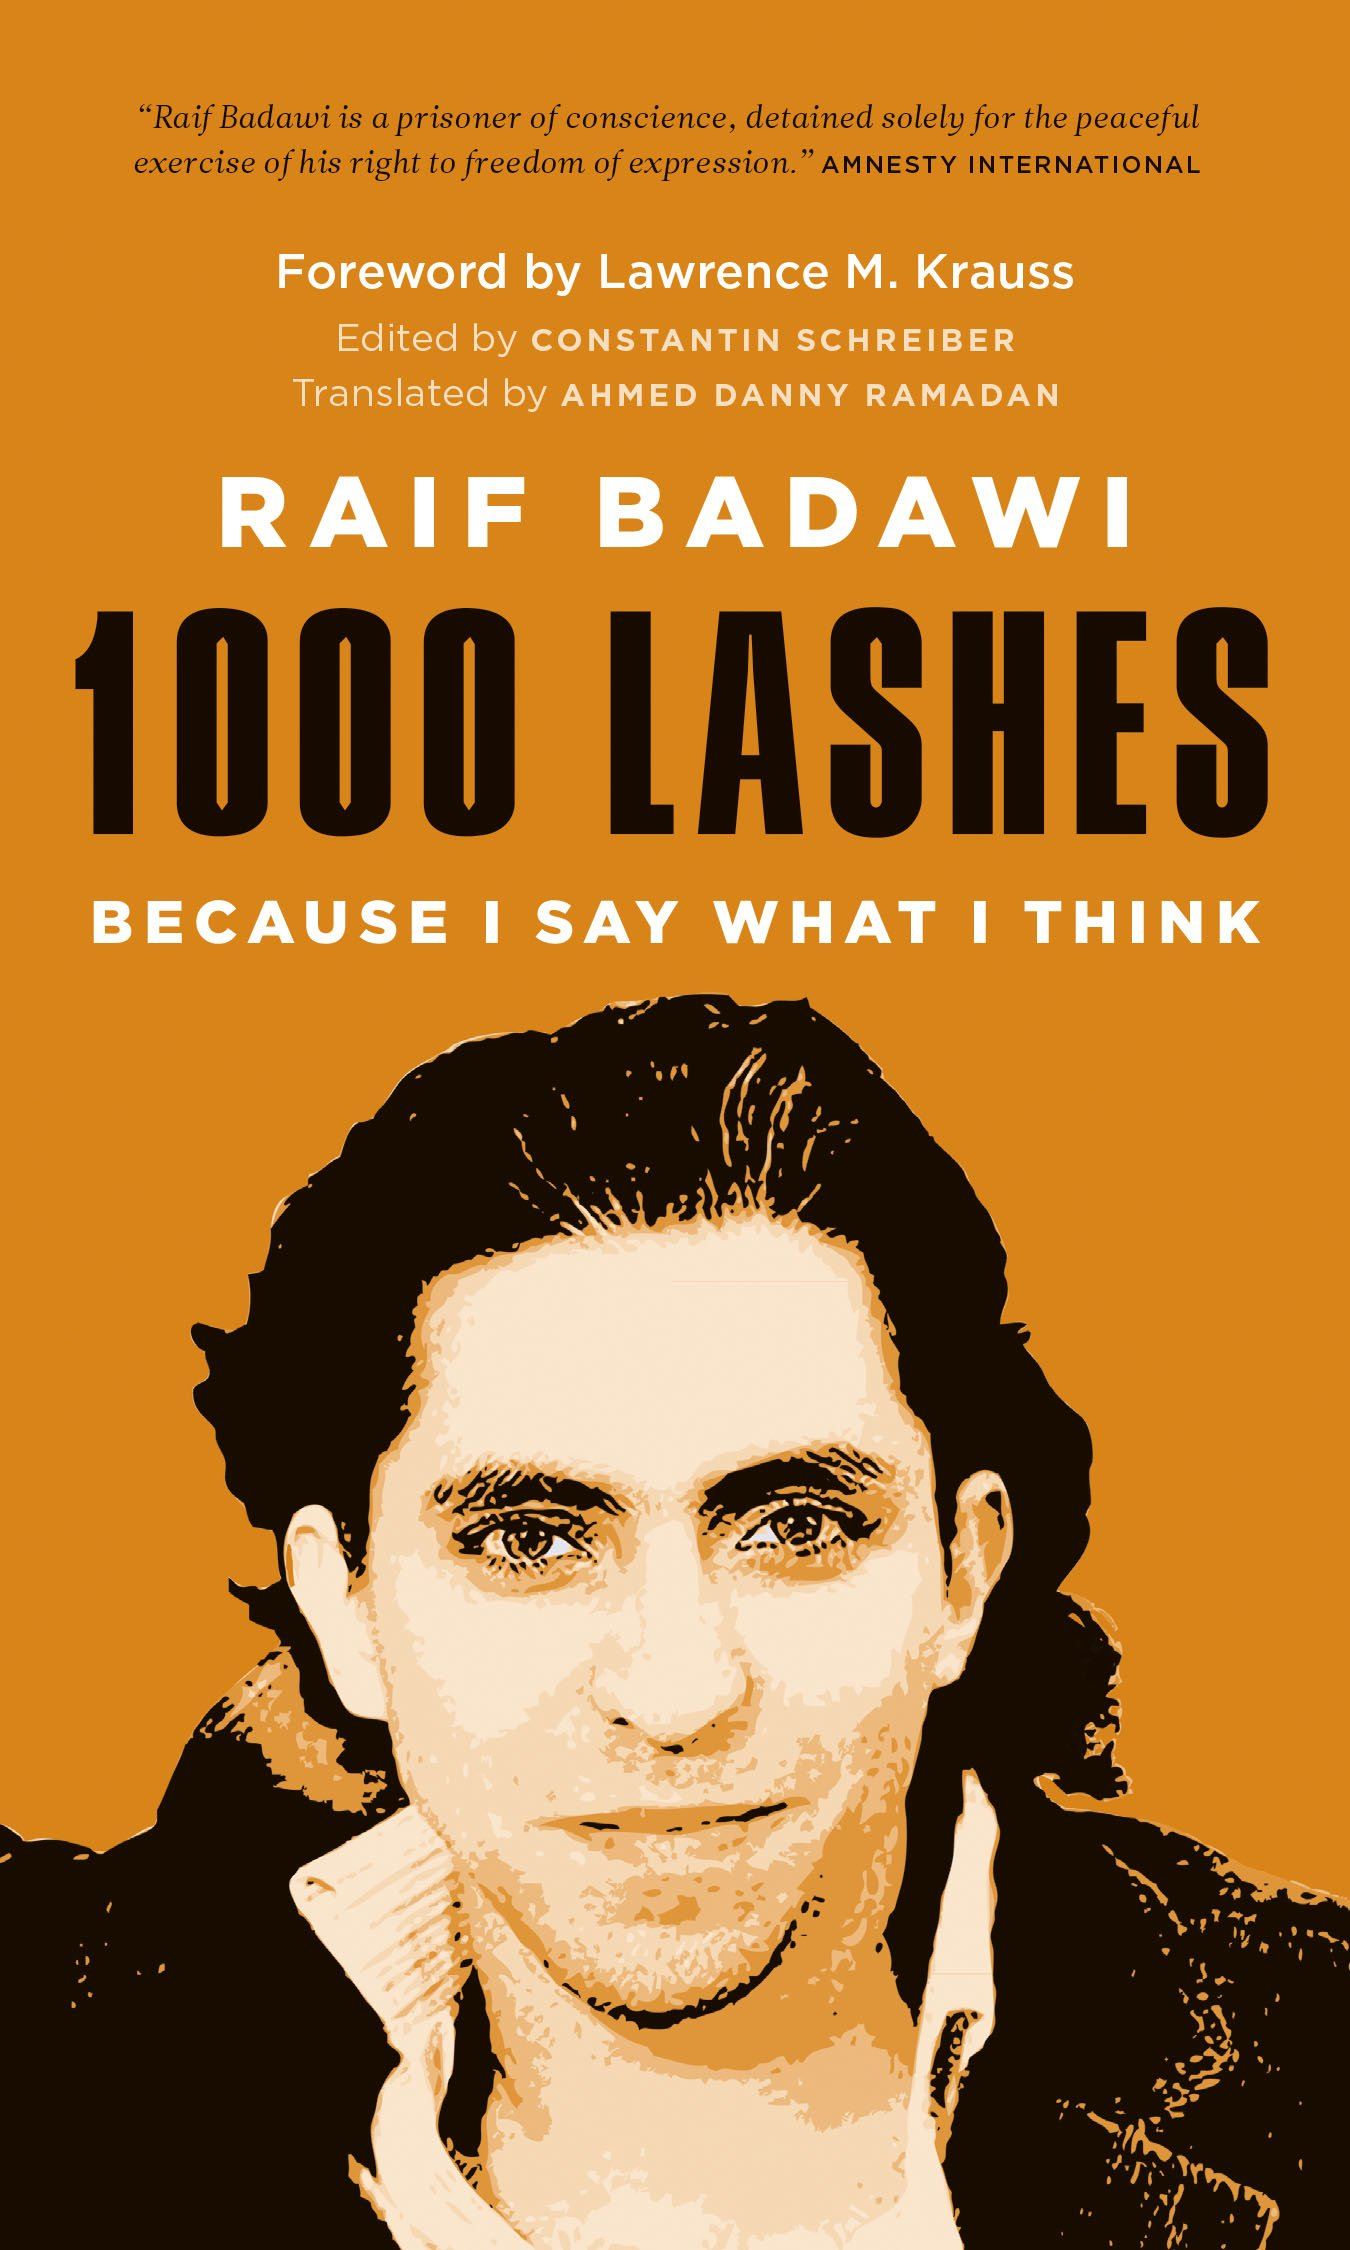 1000 Lashes: Because I Say What I Think: Raif Badawi, Constantin Schreiber,  Ahmad Danny Ramadan, Lawrence M. Krauss: 9781771642095: Amazon.com: Books